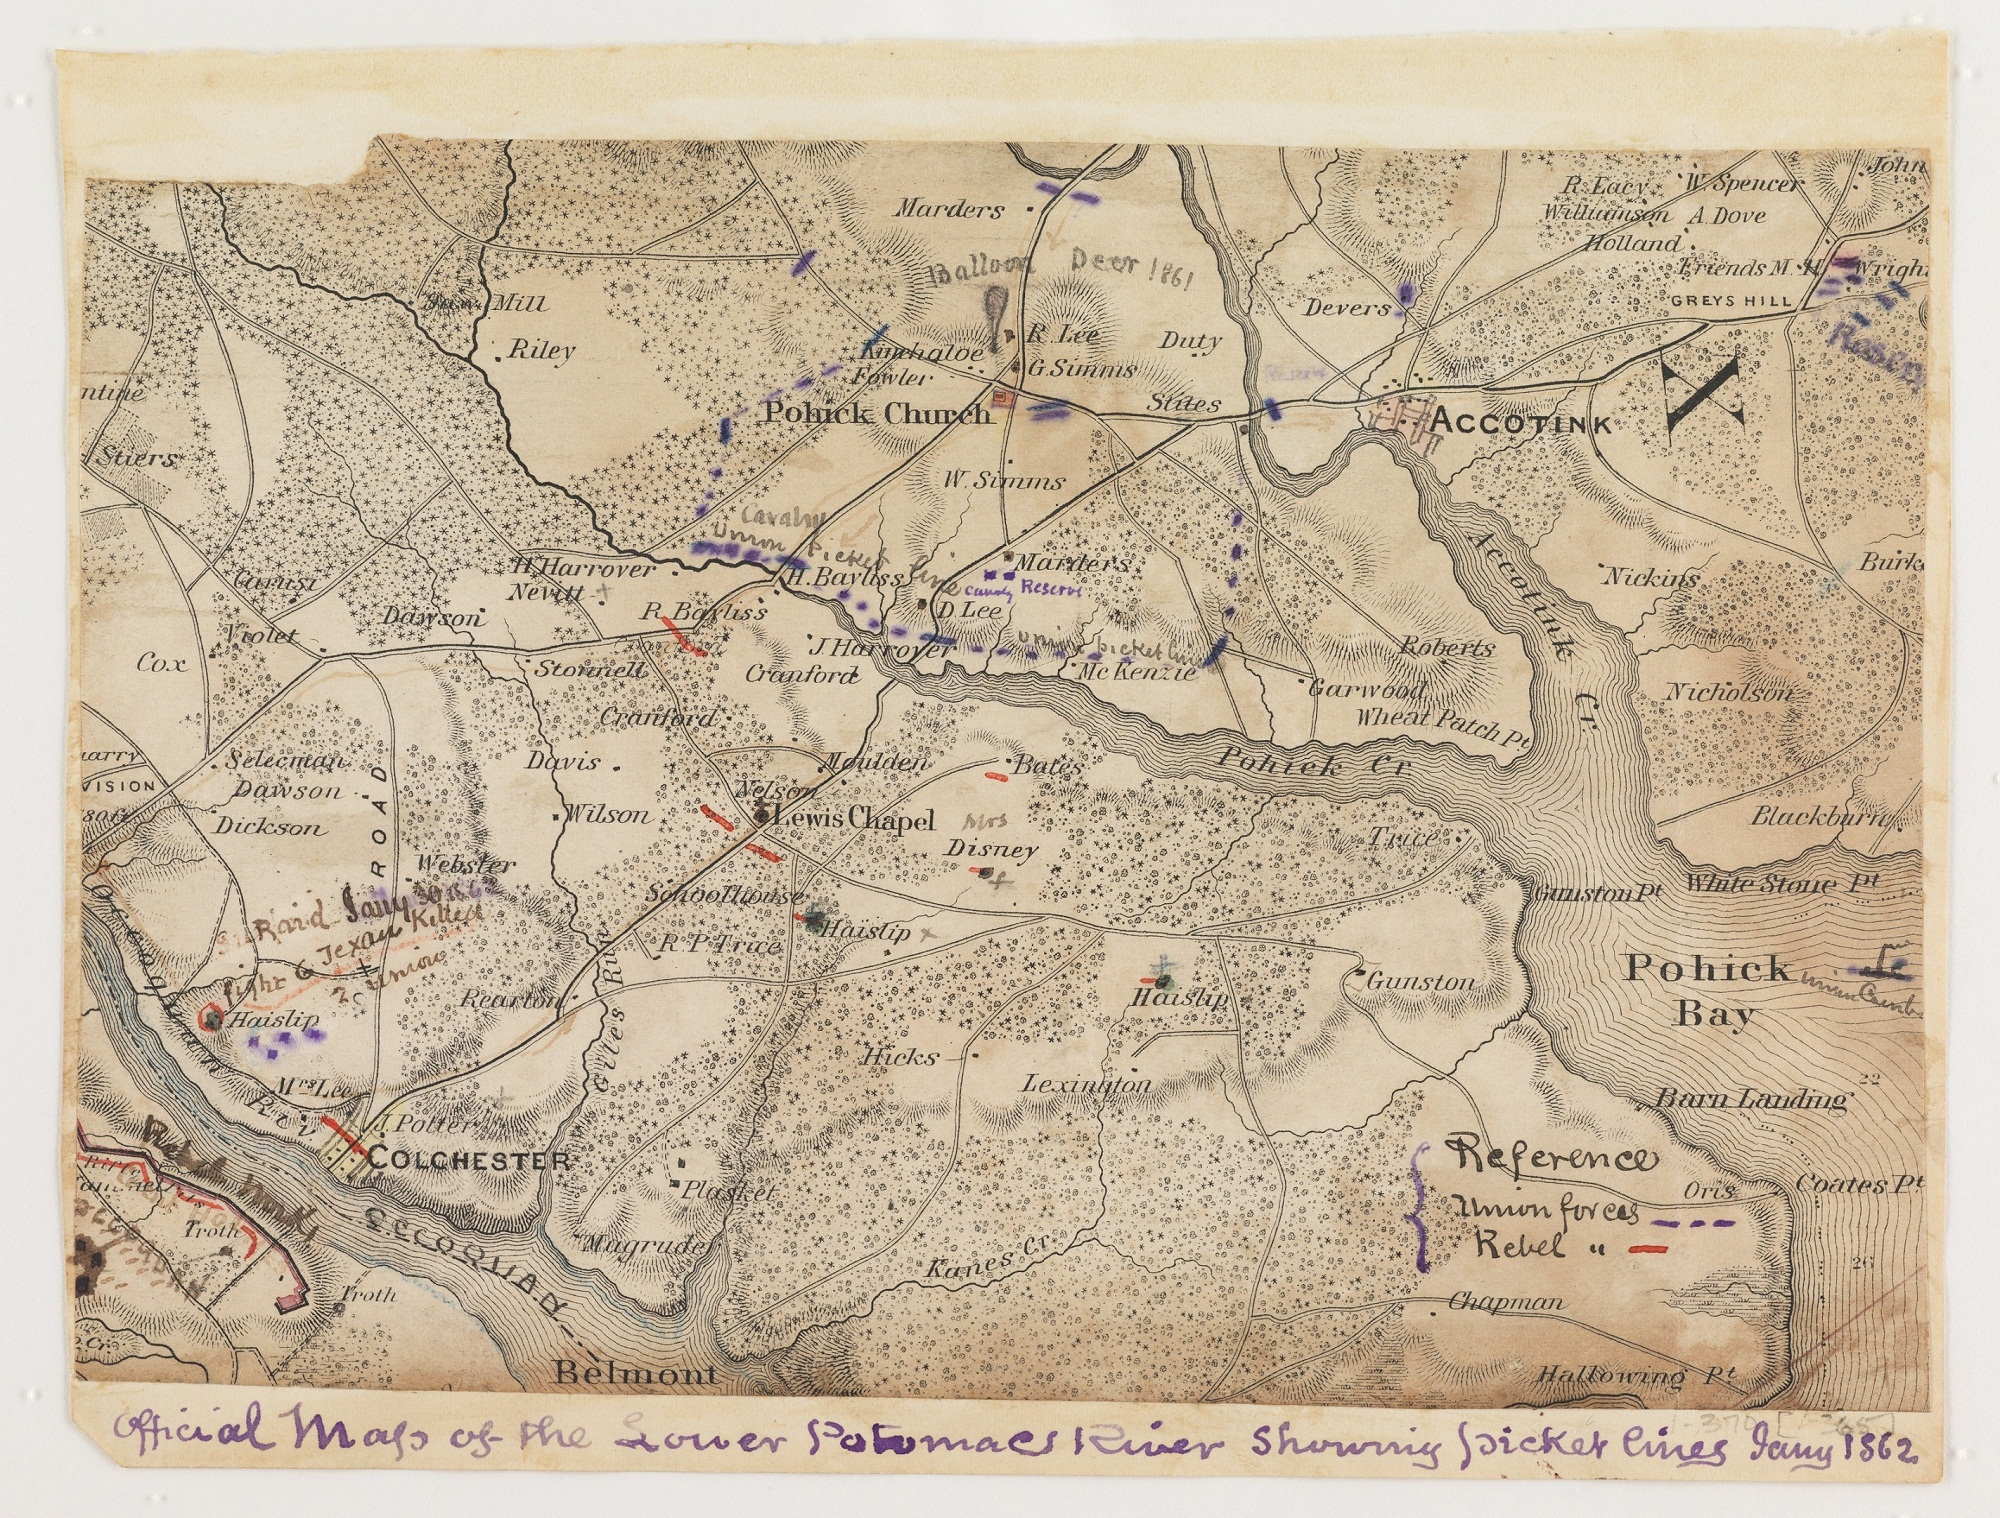 Civil War maps at the Library of Congress Mapping the Nation Blog